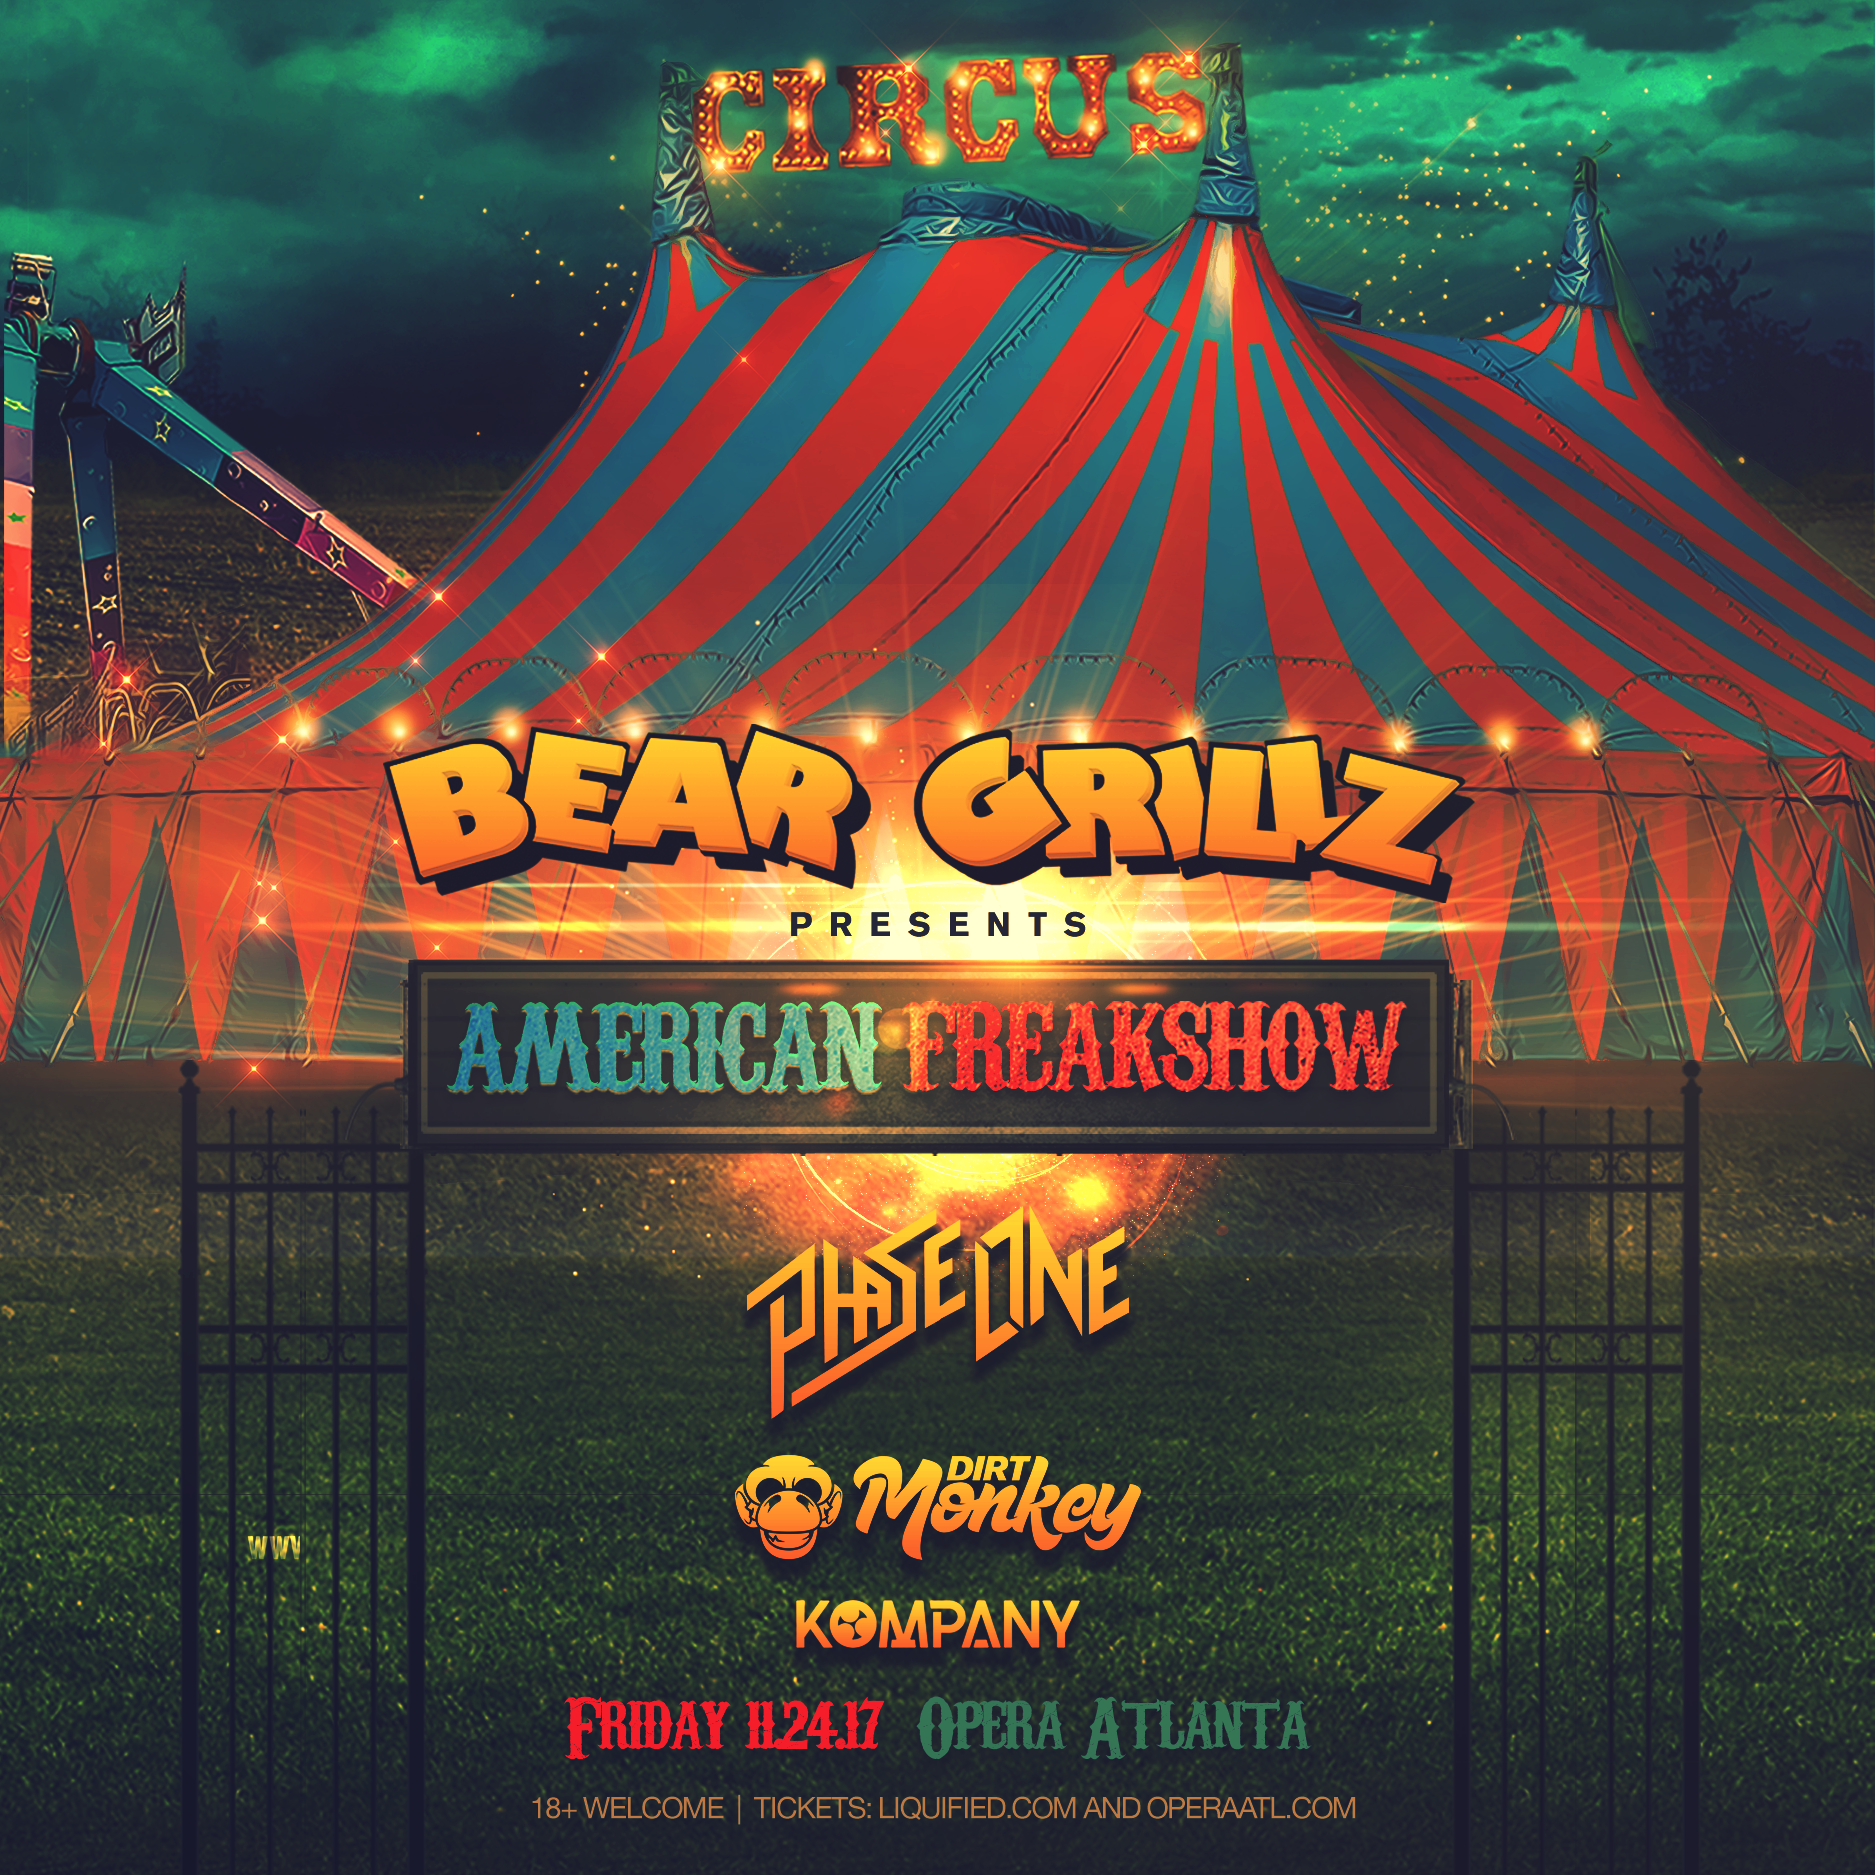 BEAR GRILZ, PHASE ONE & MORE | 11.24.17. BEAR GRILZ, PHASE ONE & MORE | 11.24.17